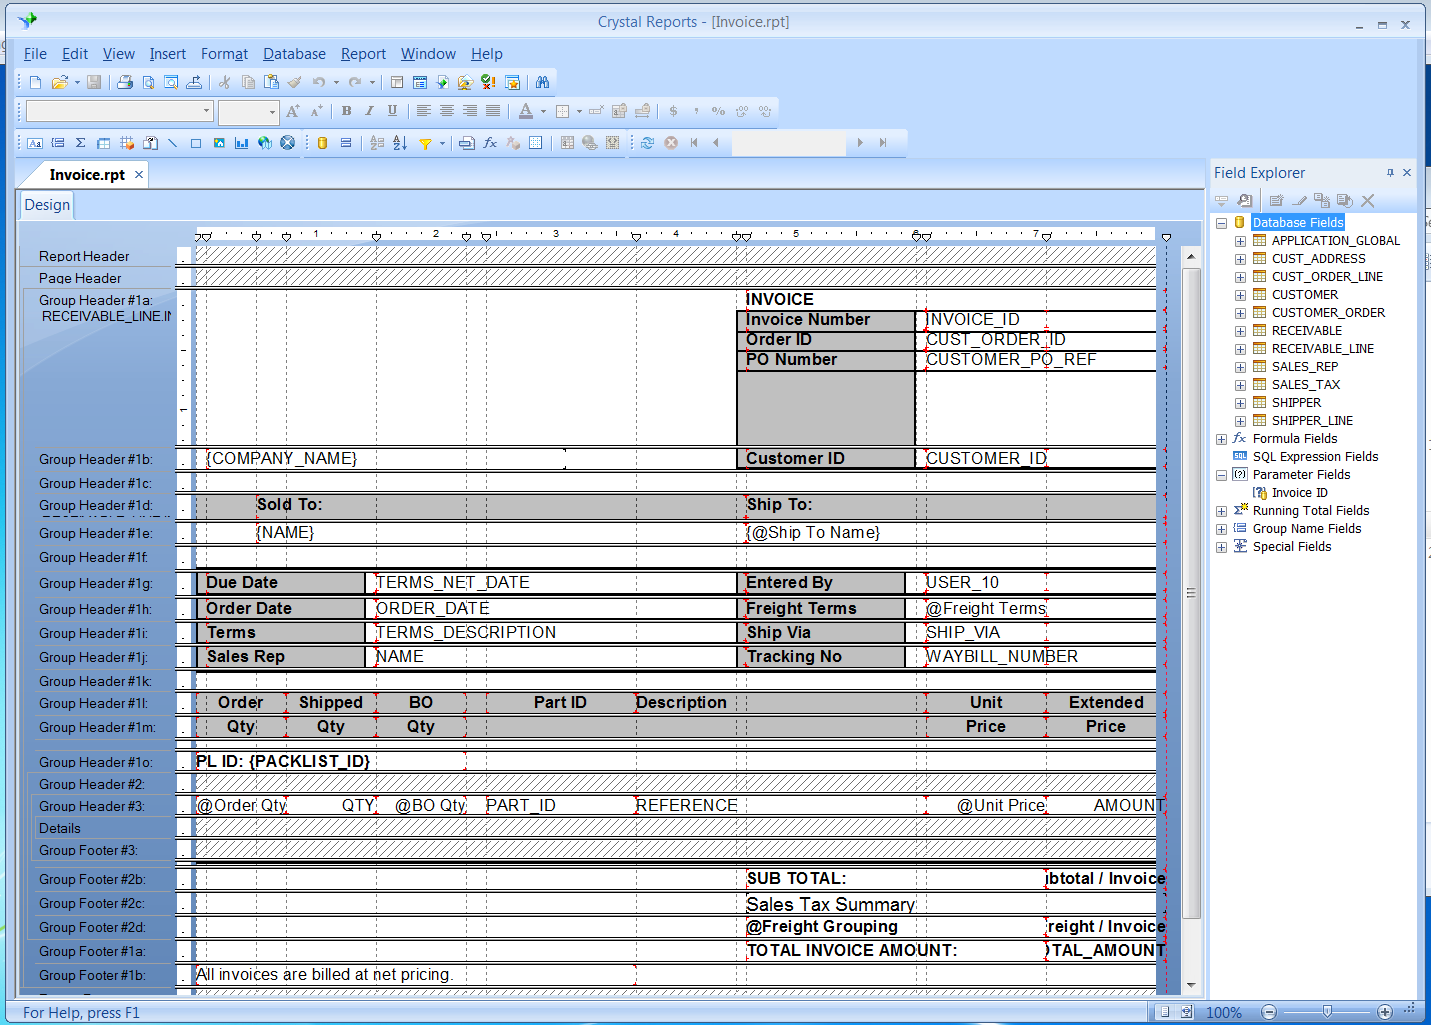 Logicity Auto Invoicing for Infor VISUAL ERP - SaberLogic